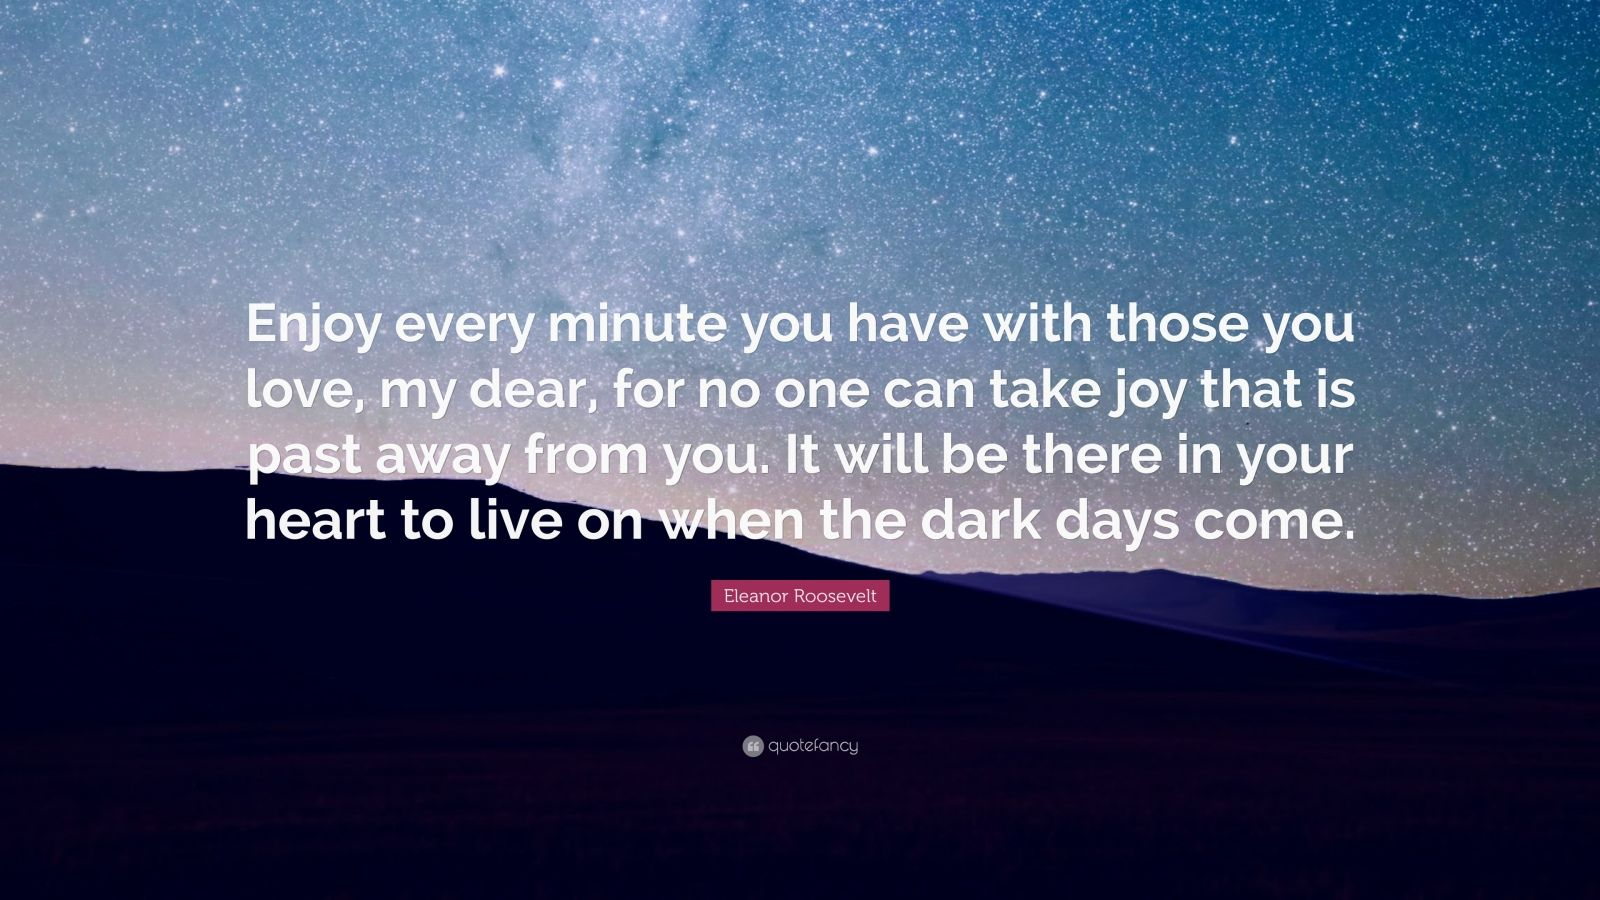 """Eleanor Roosevelt Quote: """"Enjoy every minute you have with those you love, my dear, for no one can take joy that is past away from you. It will be there in your heart to live on when the dark days come."""""""